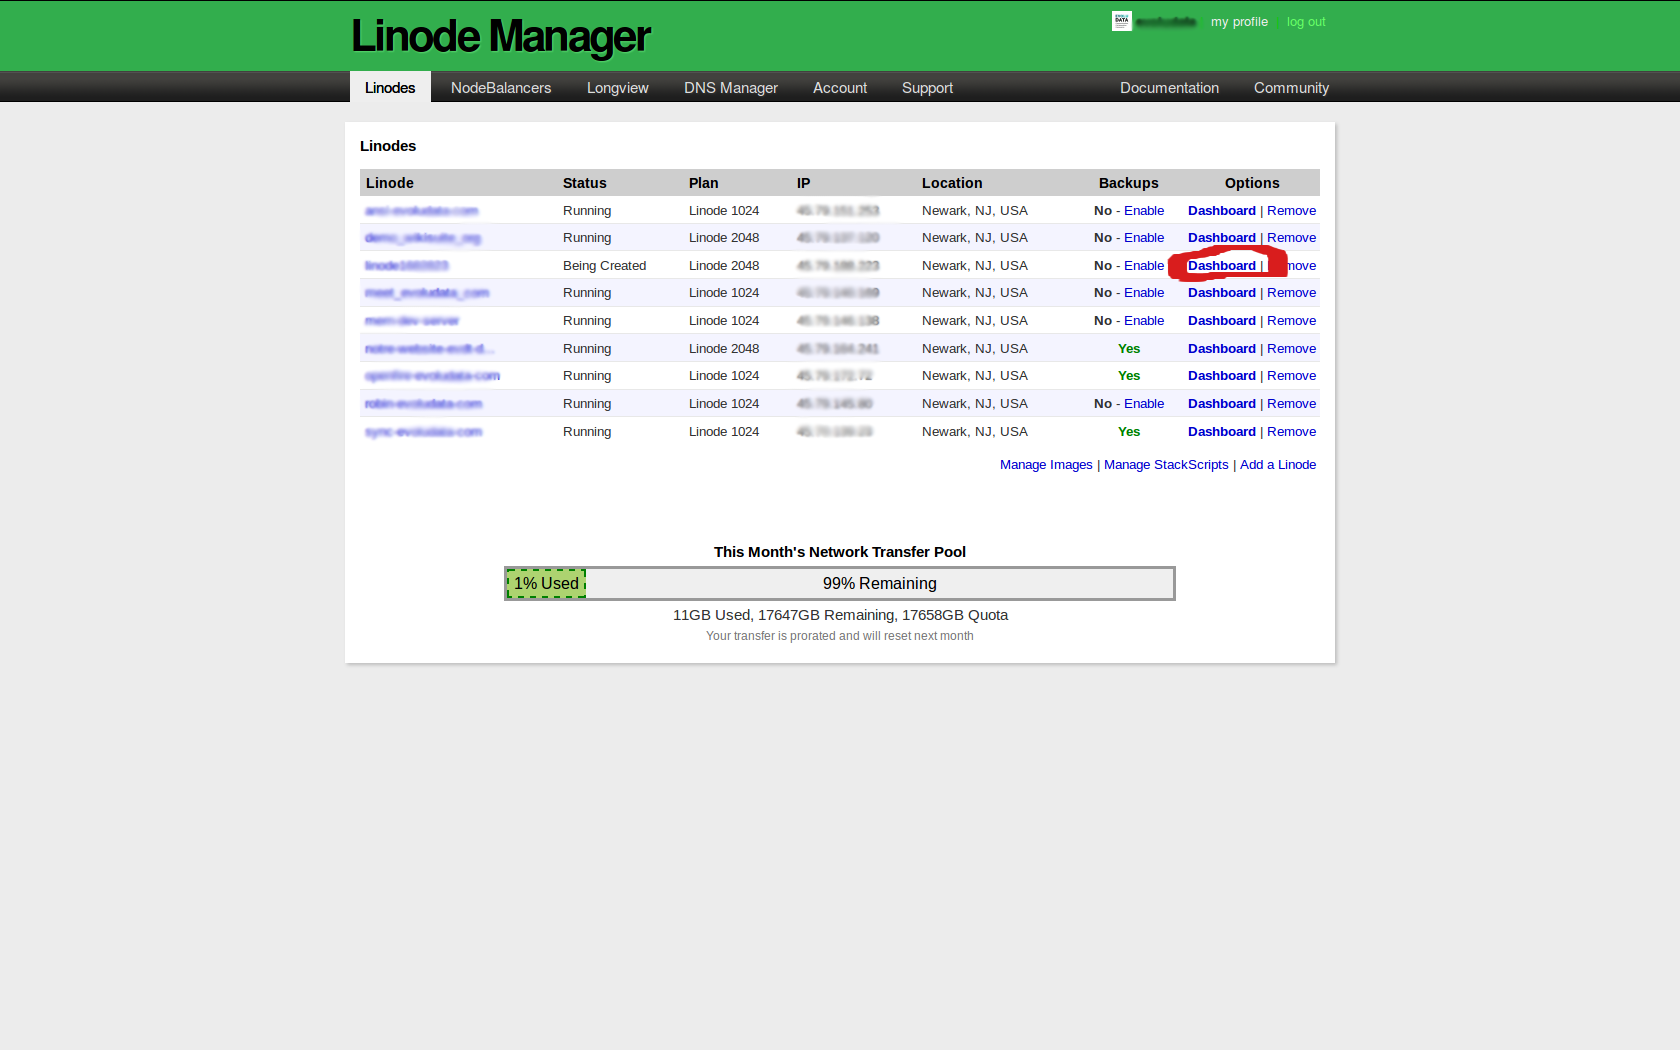 WikiSuite | How to install ClearOS on Linode